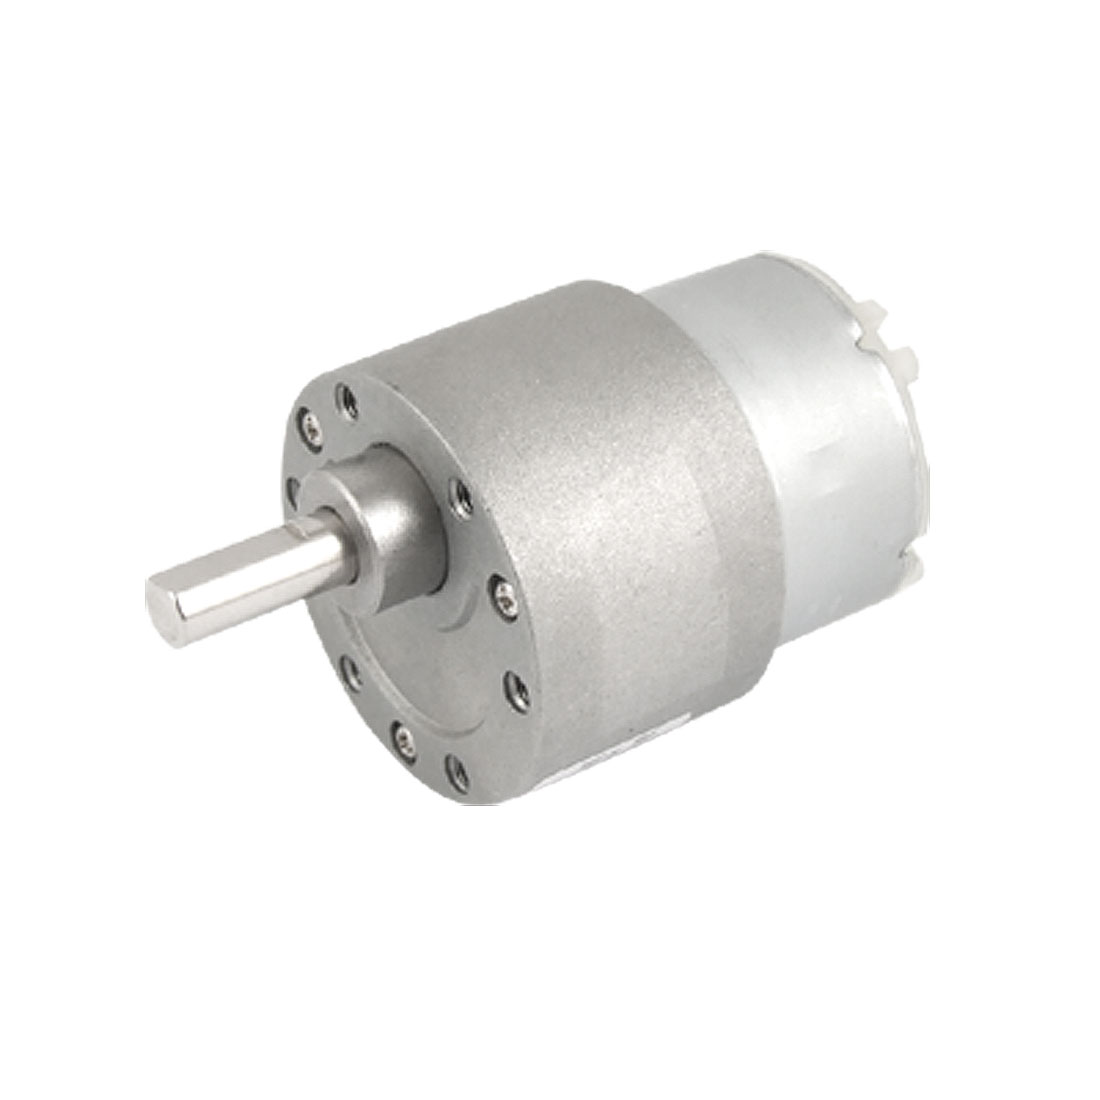 120RPM Output Speed 37mm Diameter 12V 0.5A DC Geared Motor